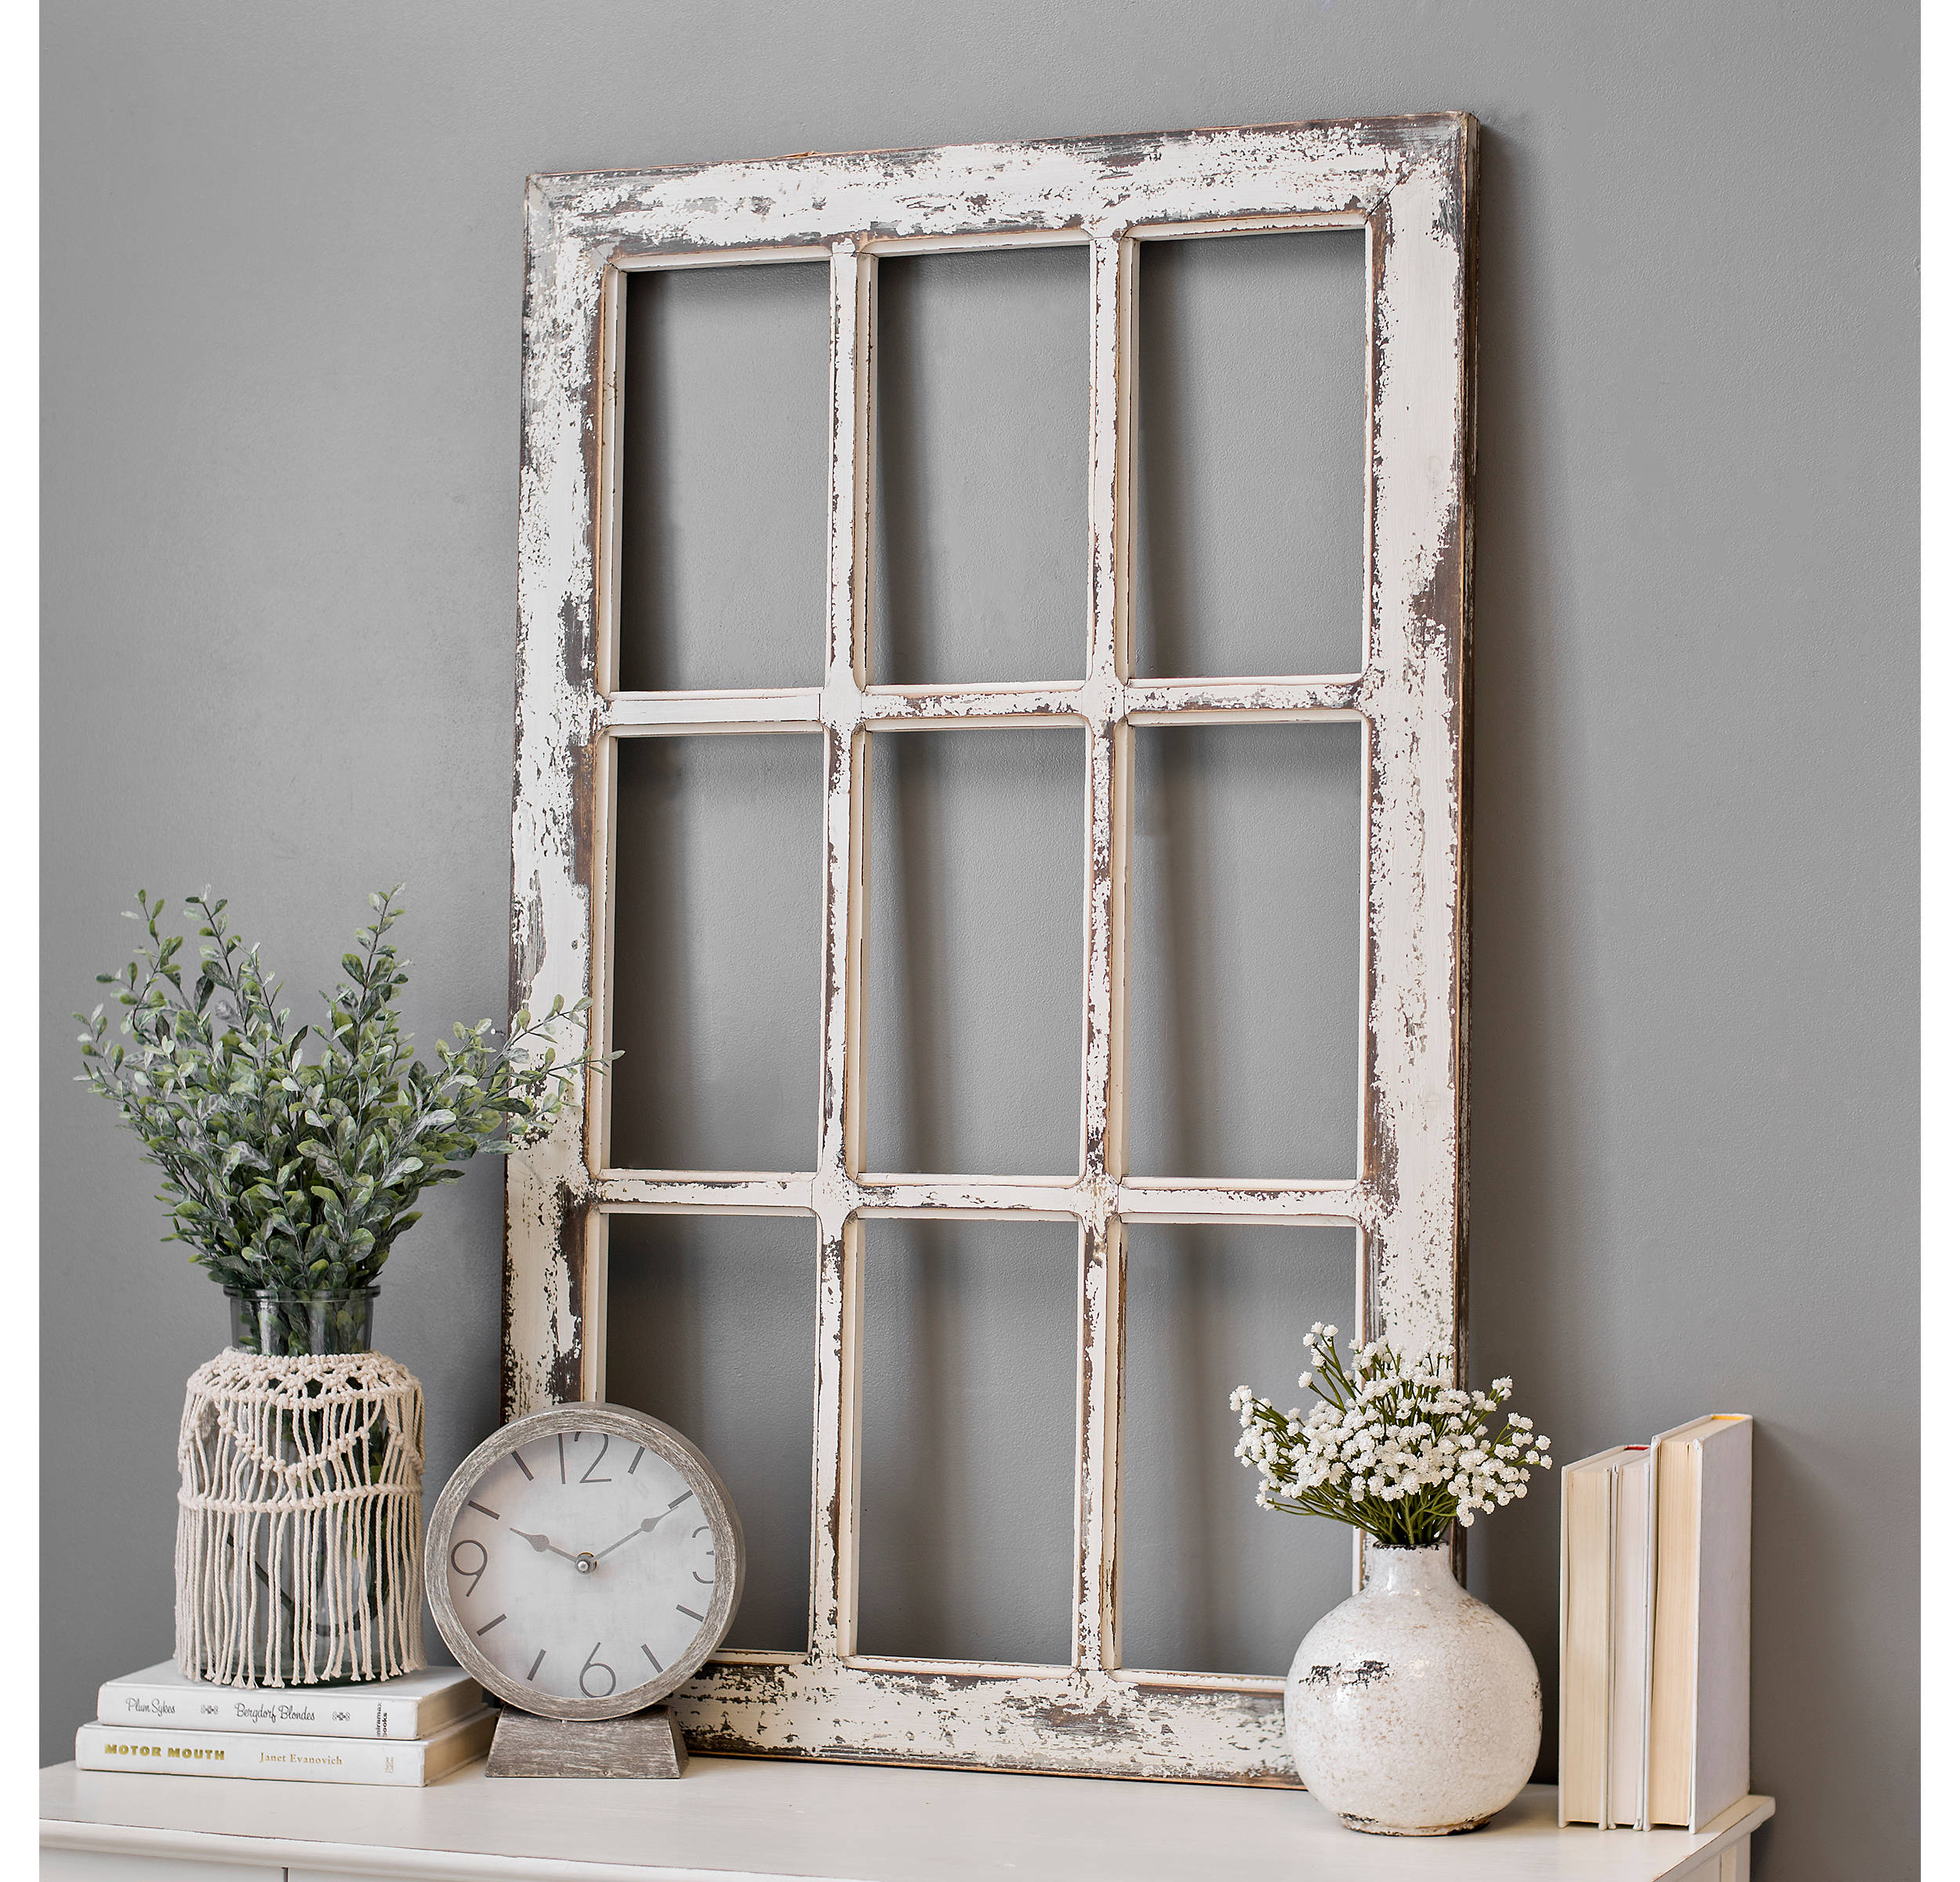 Shop Weathered Rustic Windowpane Wood Wall Plaque from Kirkland's on Openhaus